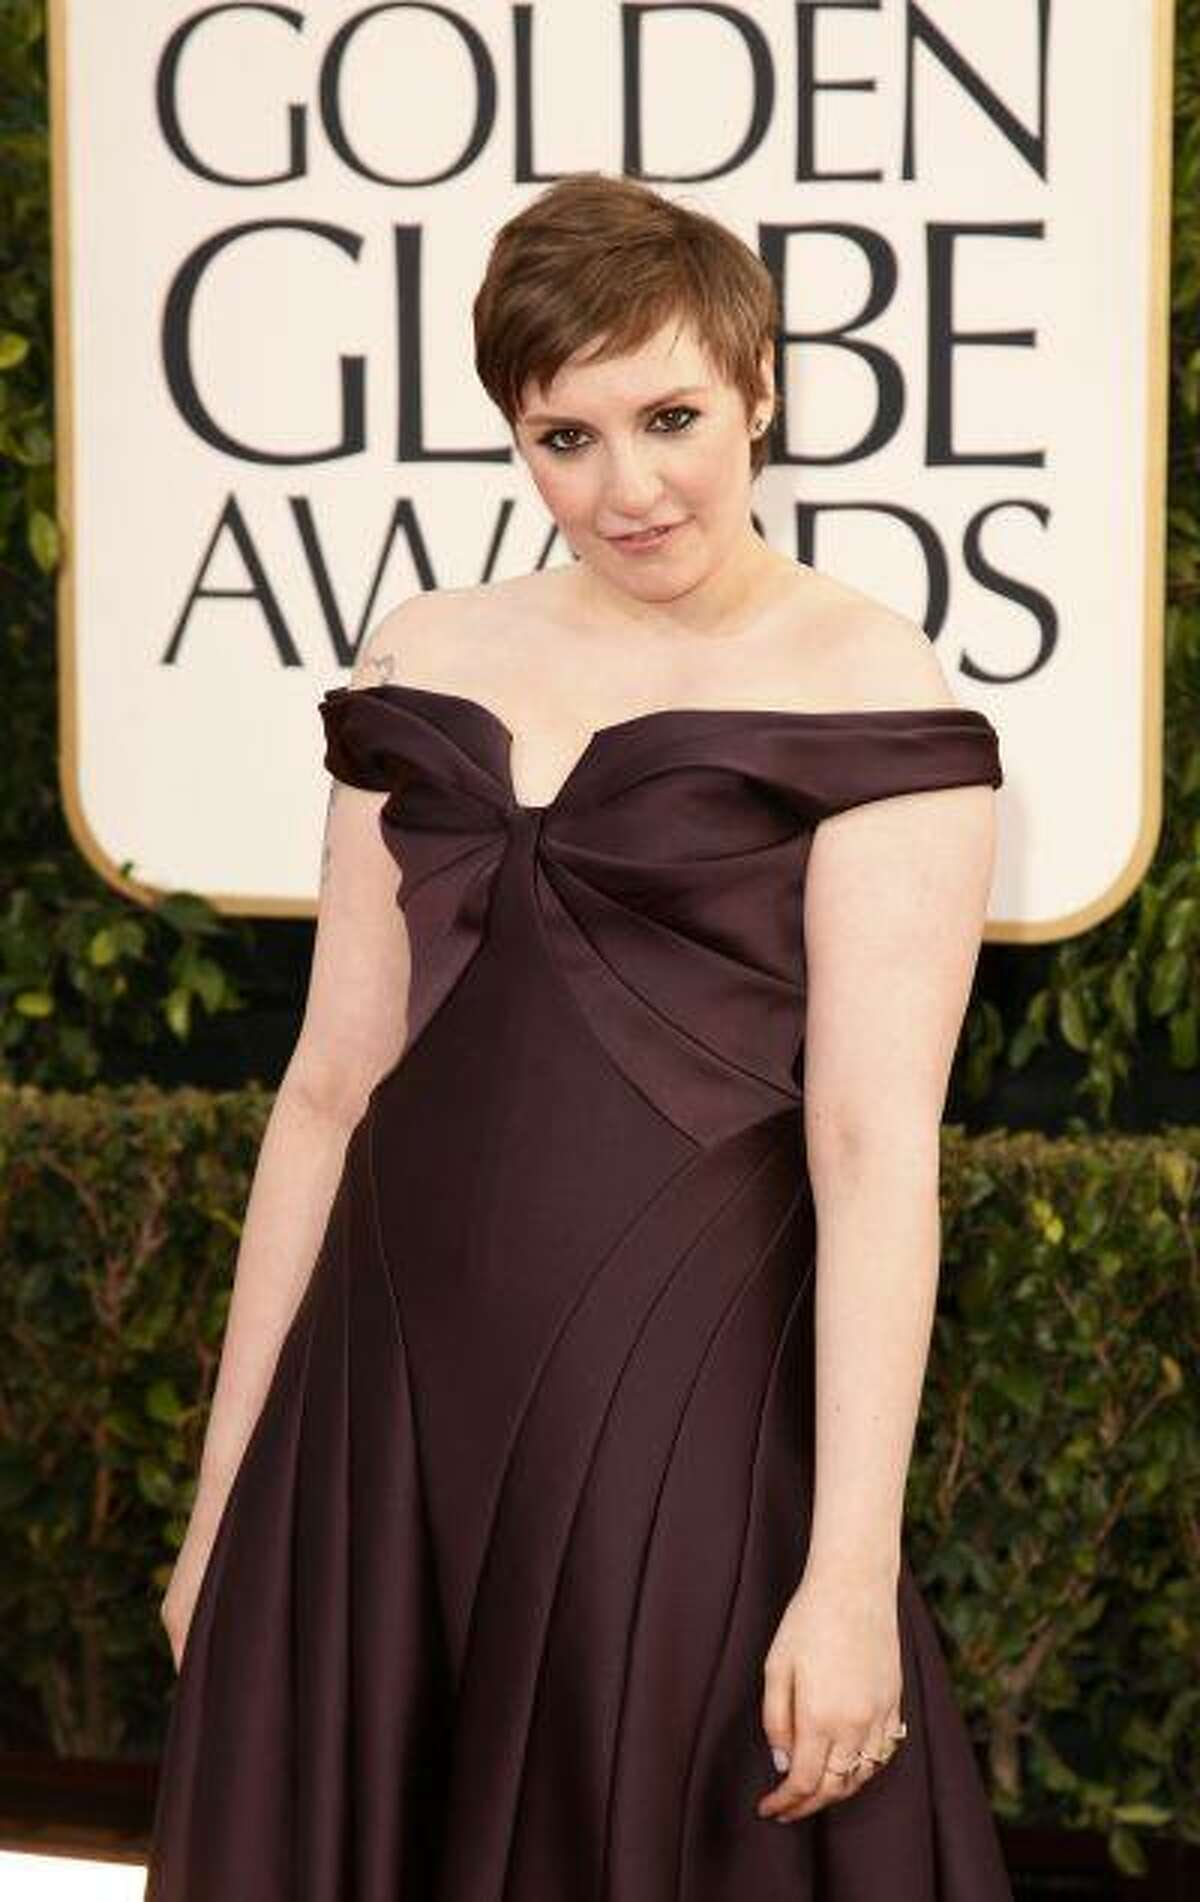 """Actress Lena Dunham of the TV series """"Girls"""" at the 70th annual Golden Globe Awards in Beverly Hills, Calif. (Reuters/Jason Redmond)"""